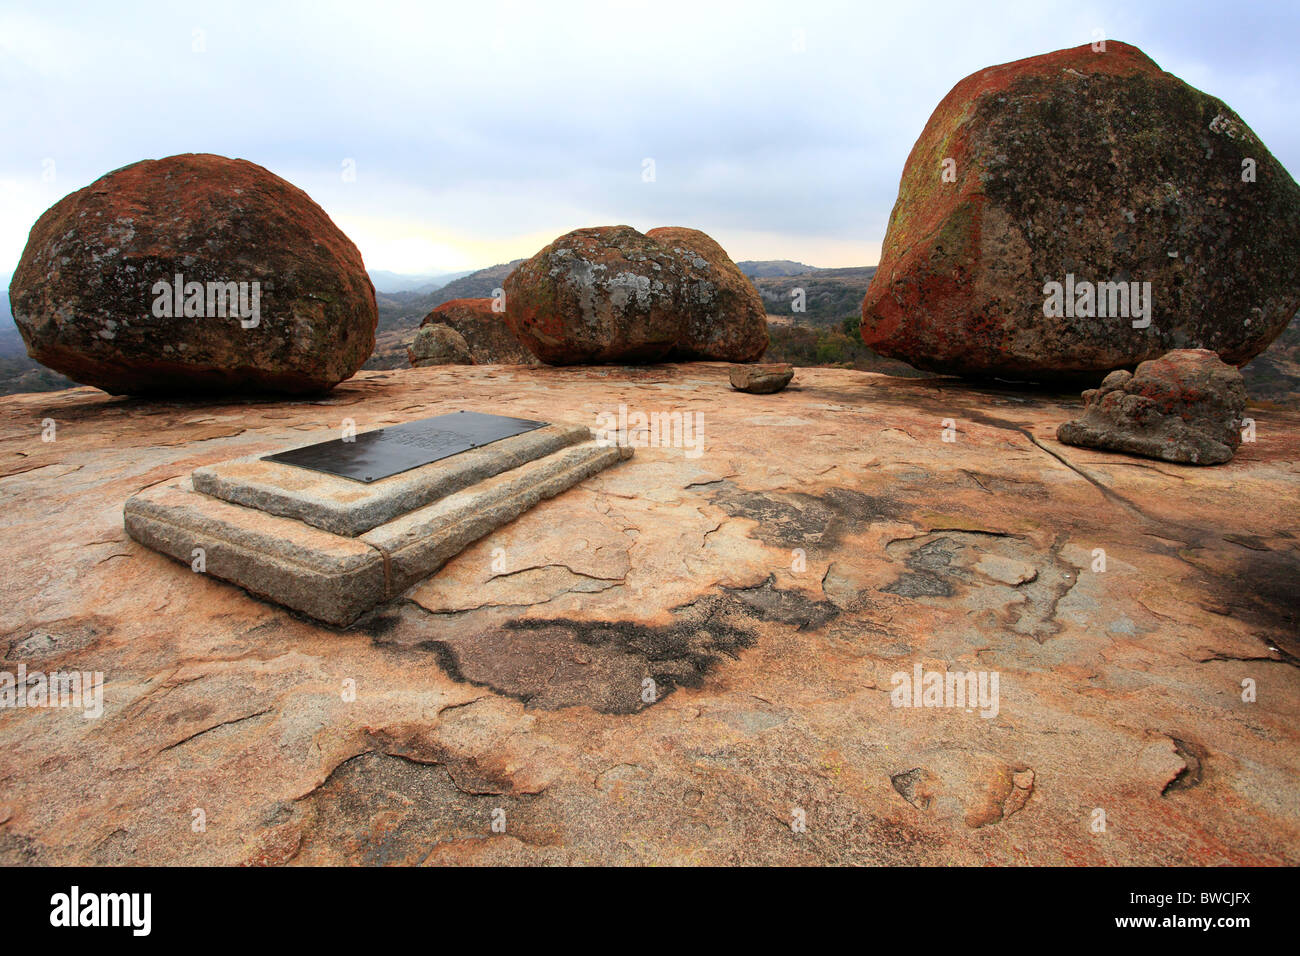 Cecil John Rhodes tomb surrounded by boulders on World's View (Malindidzimu Hill) in Matopo National Park, Zimbabwe - Stock Image